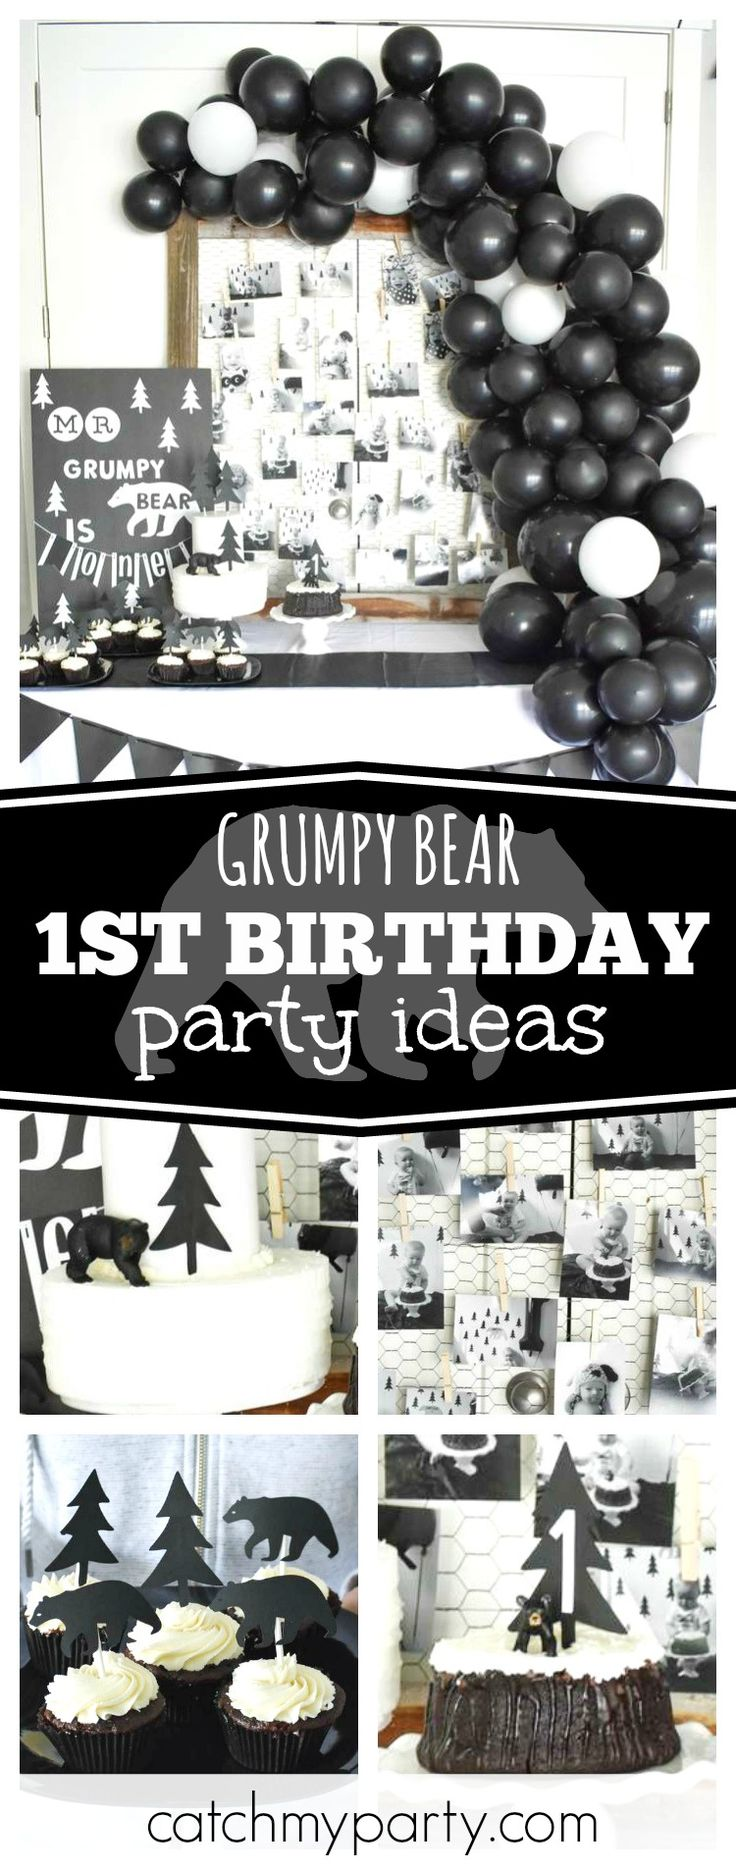 invitation words forst birthday party%0A  st Birthday   Birthday   Grumpy Bear  st birthday party